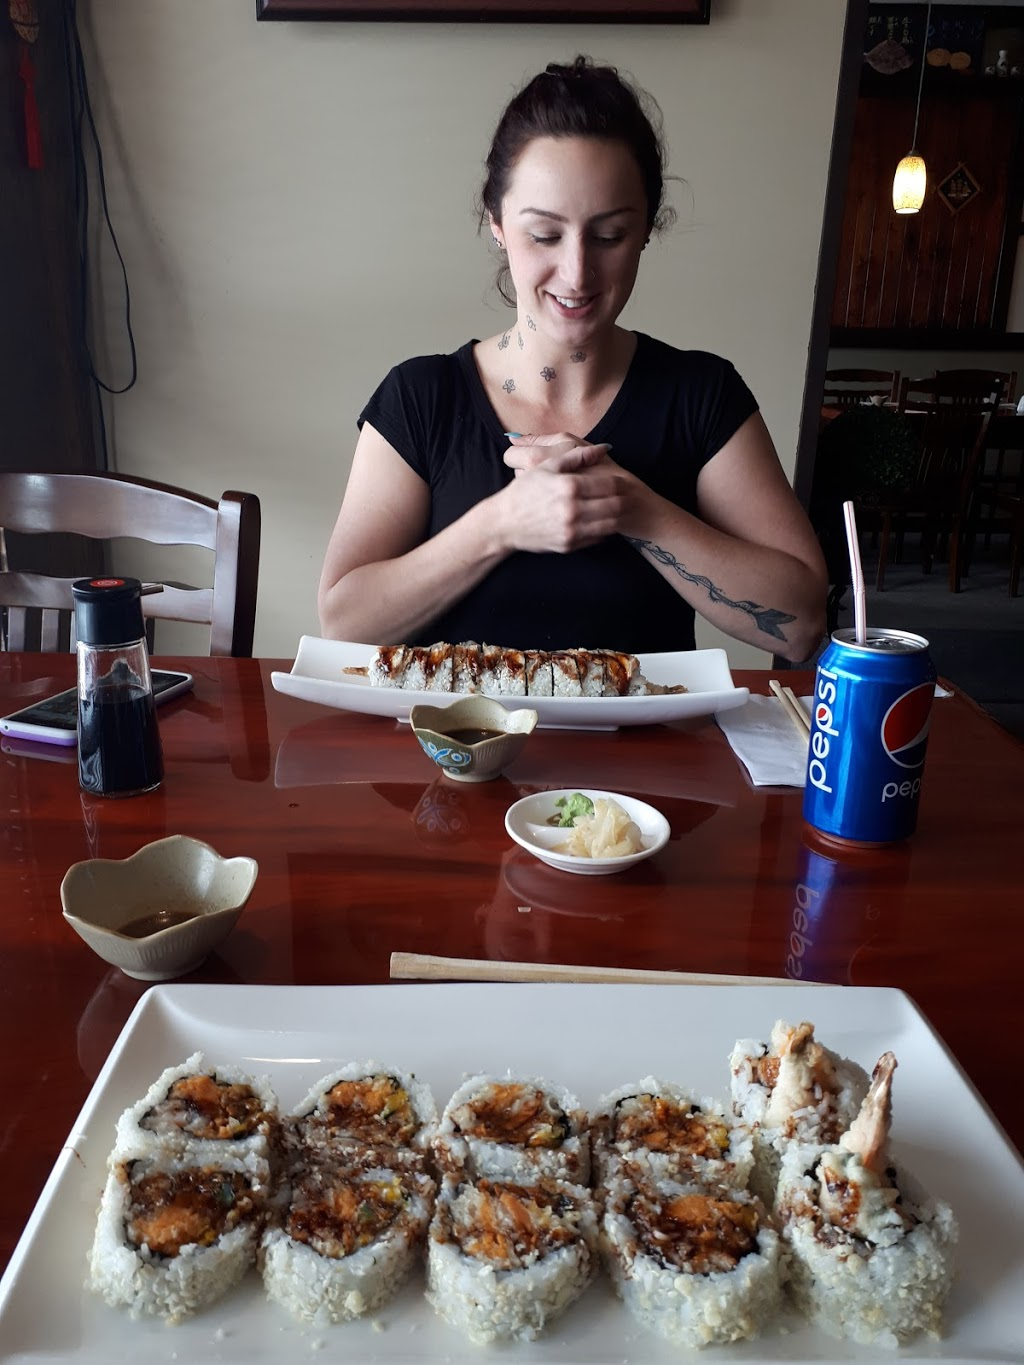 Walkerton Sushi | restaurant | 1200 Yonge St S, Walkerton, ON N0G 2V0, Canada | 5195076789 OR +1 519-507-6789